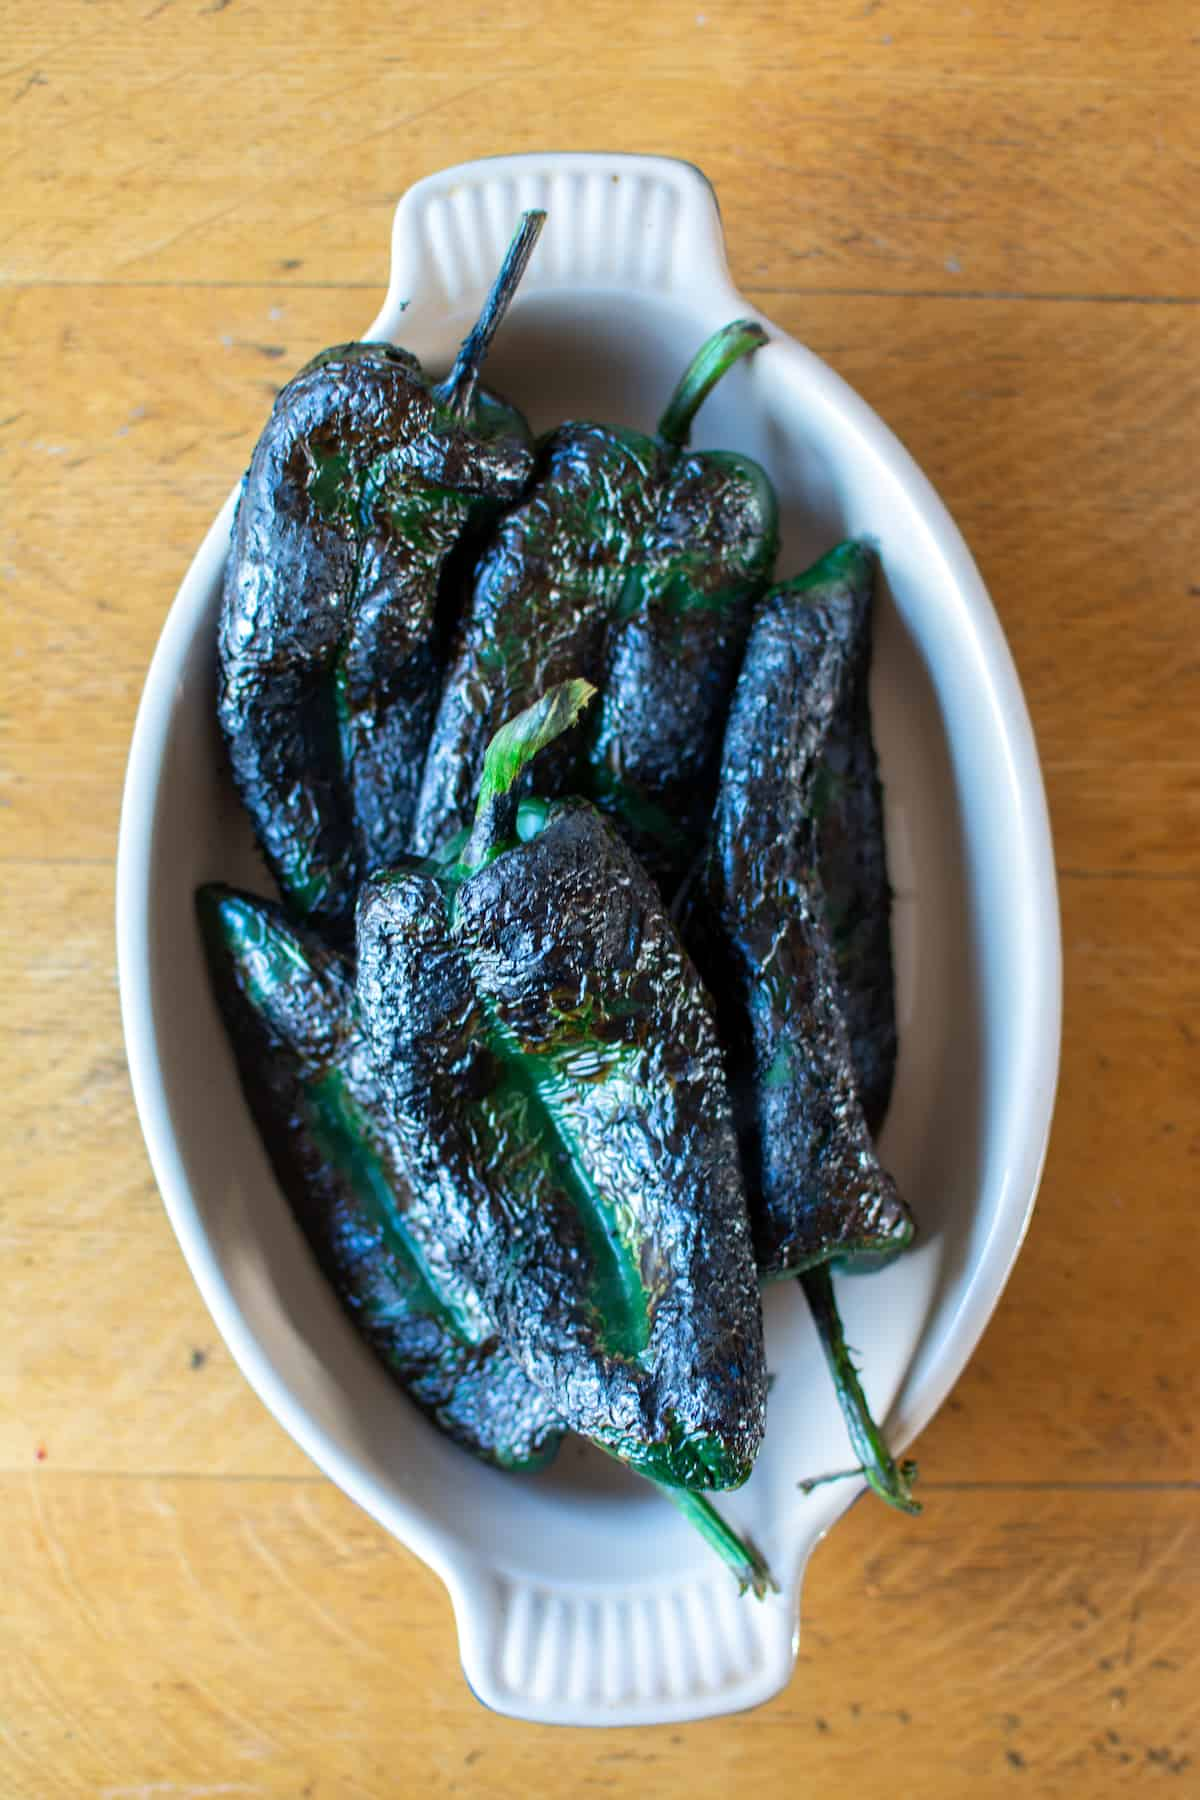 A dish of charred and blackened poblano peppers sitting in a dish on a wood table.